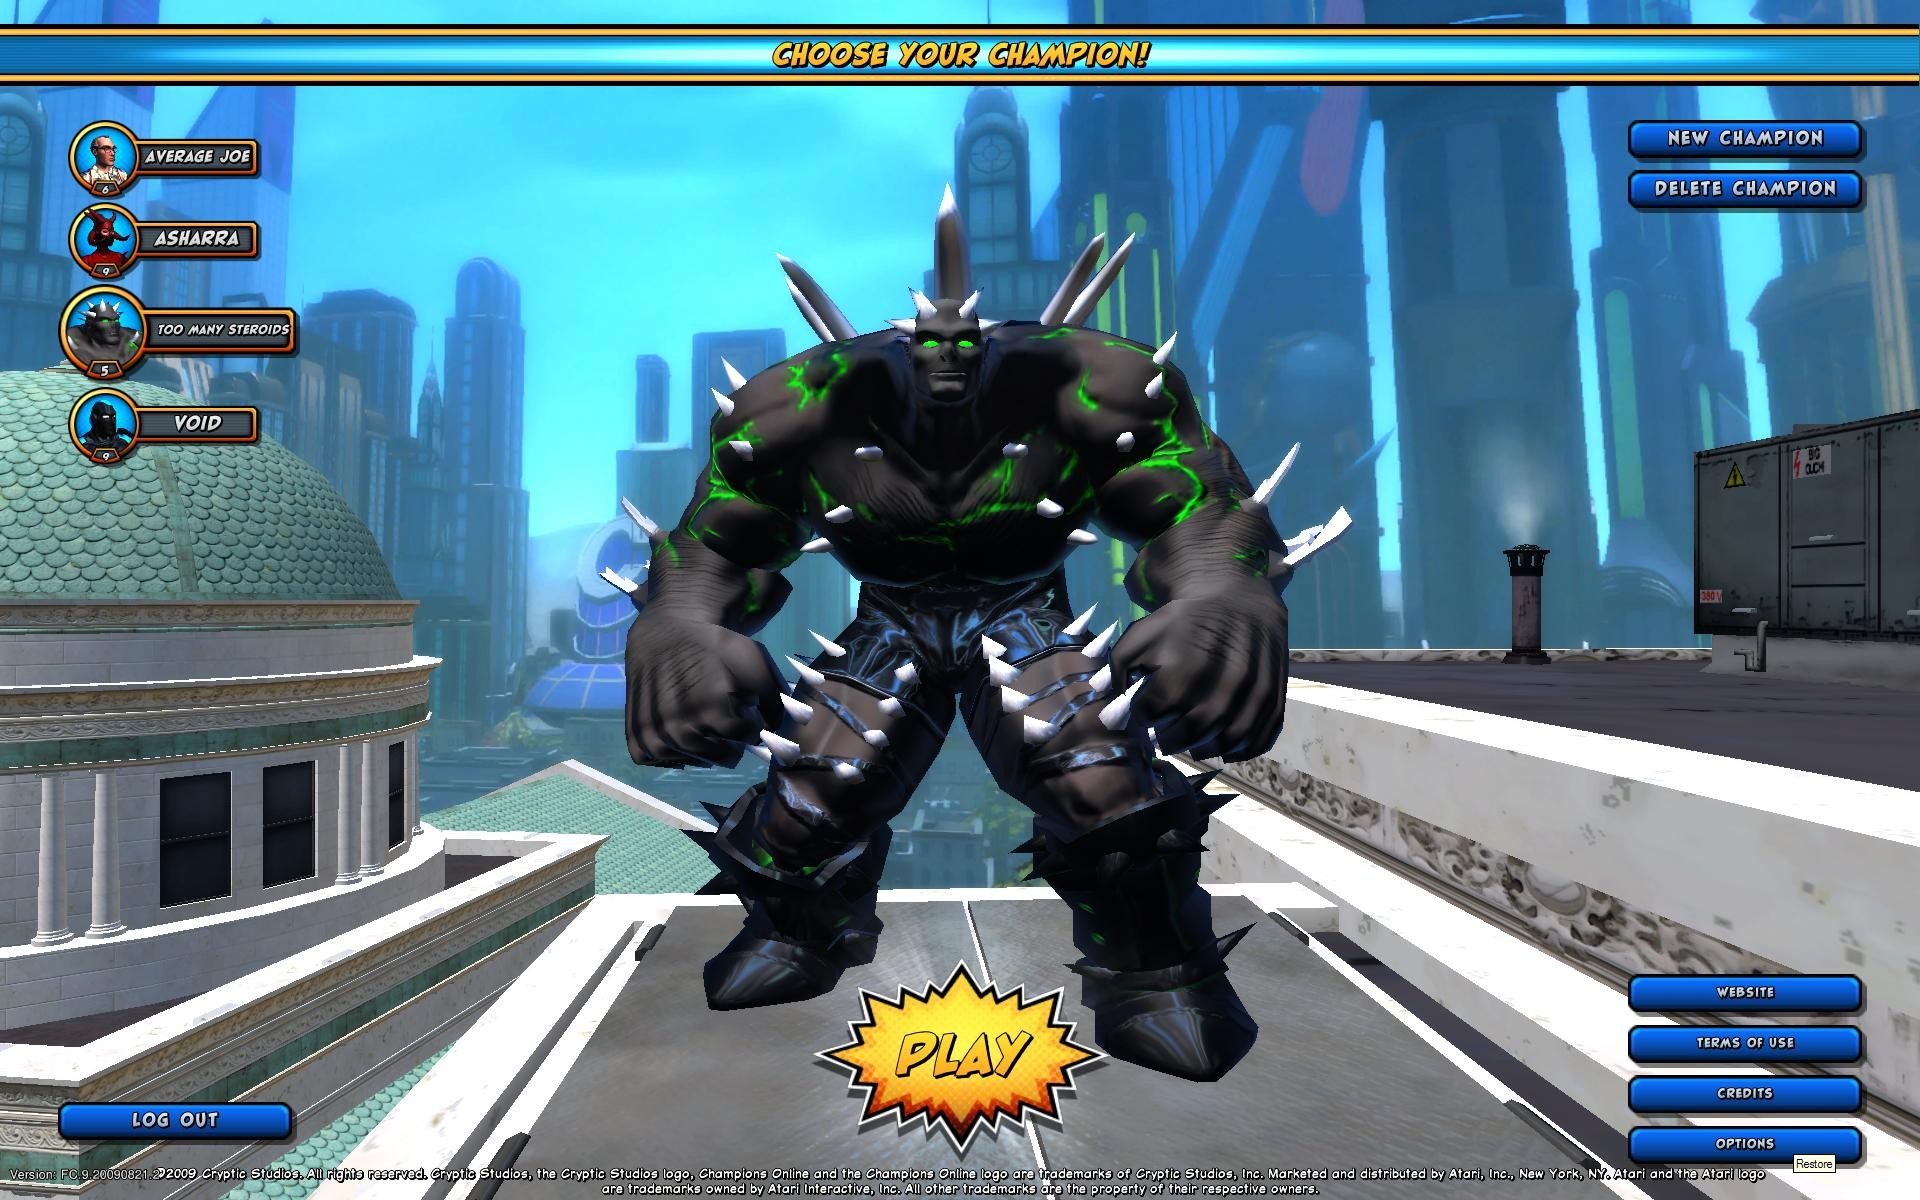 Champions Online - My brute - my least favorite